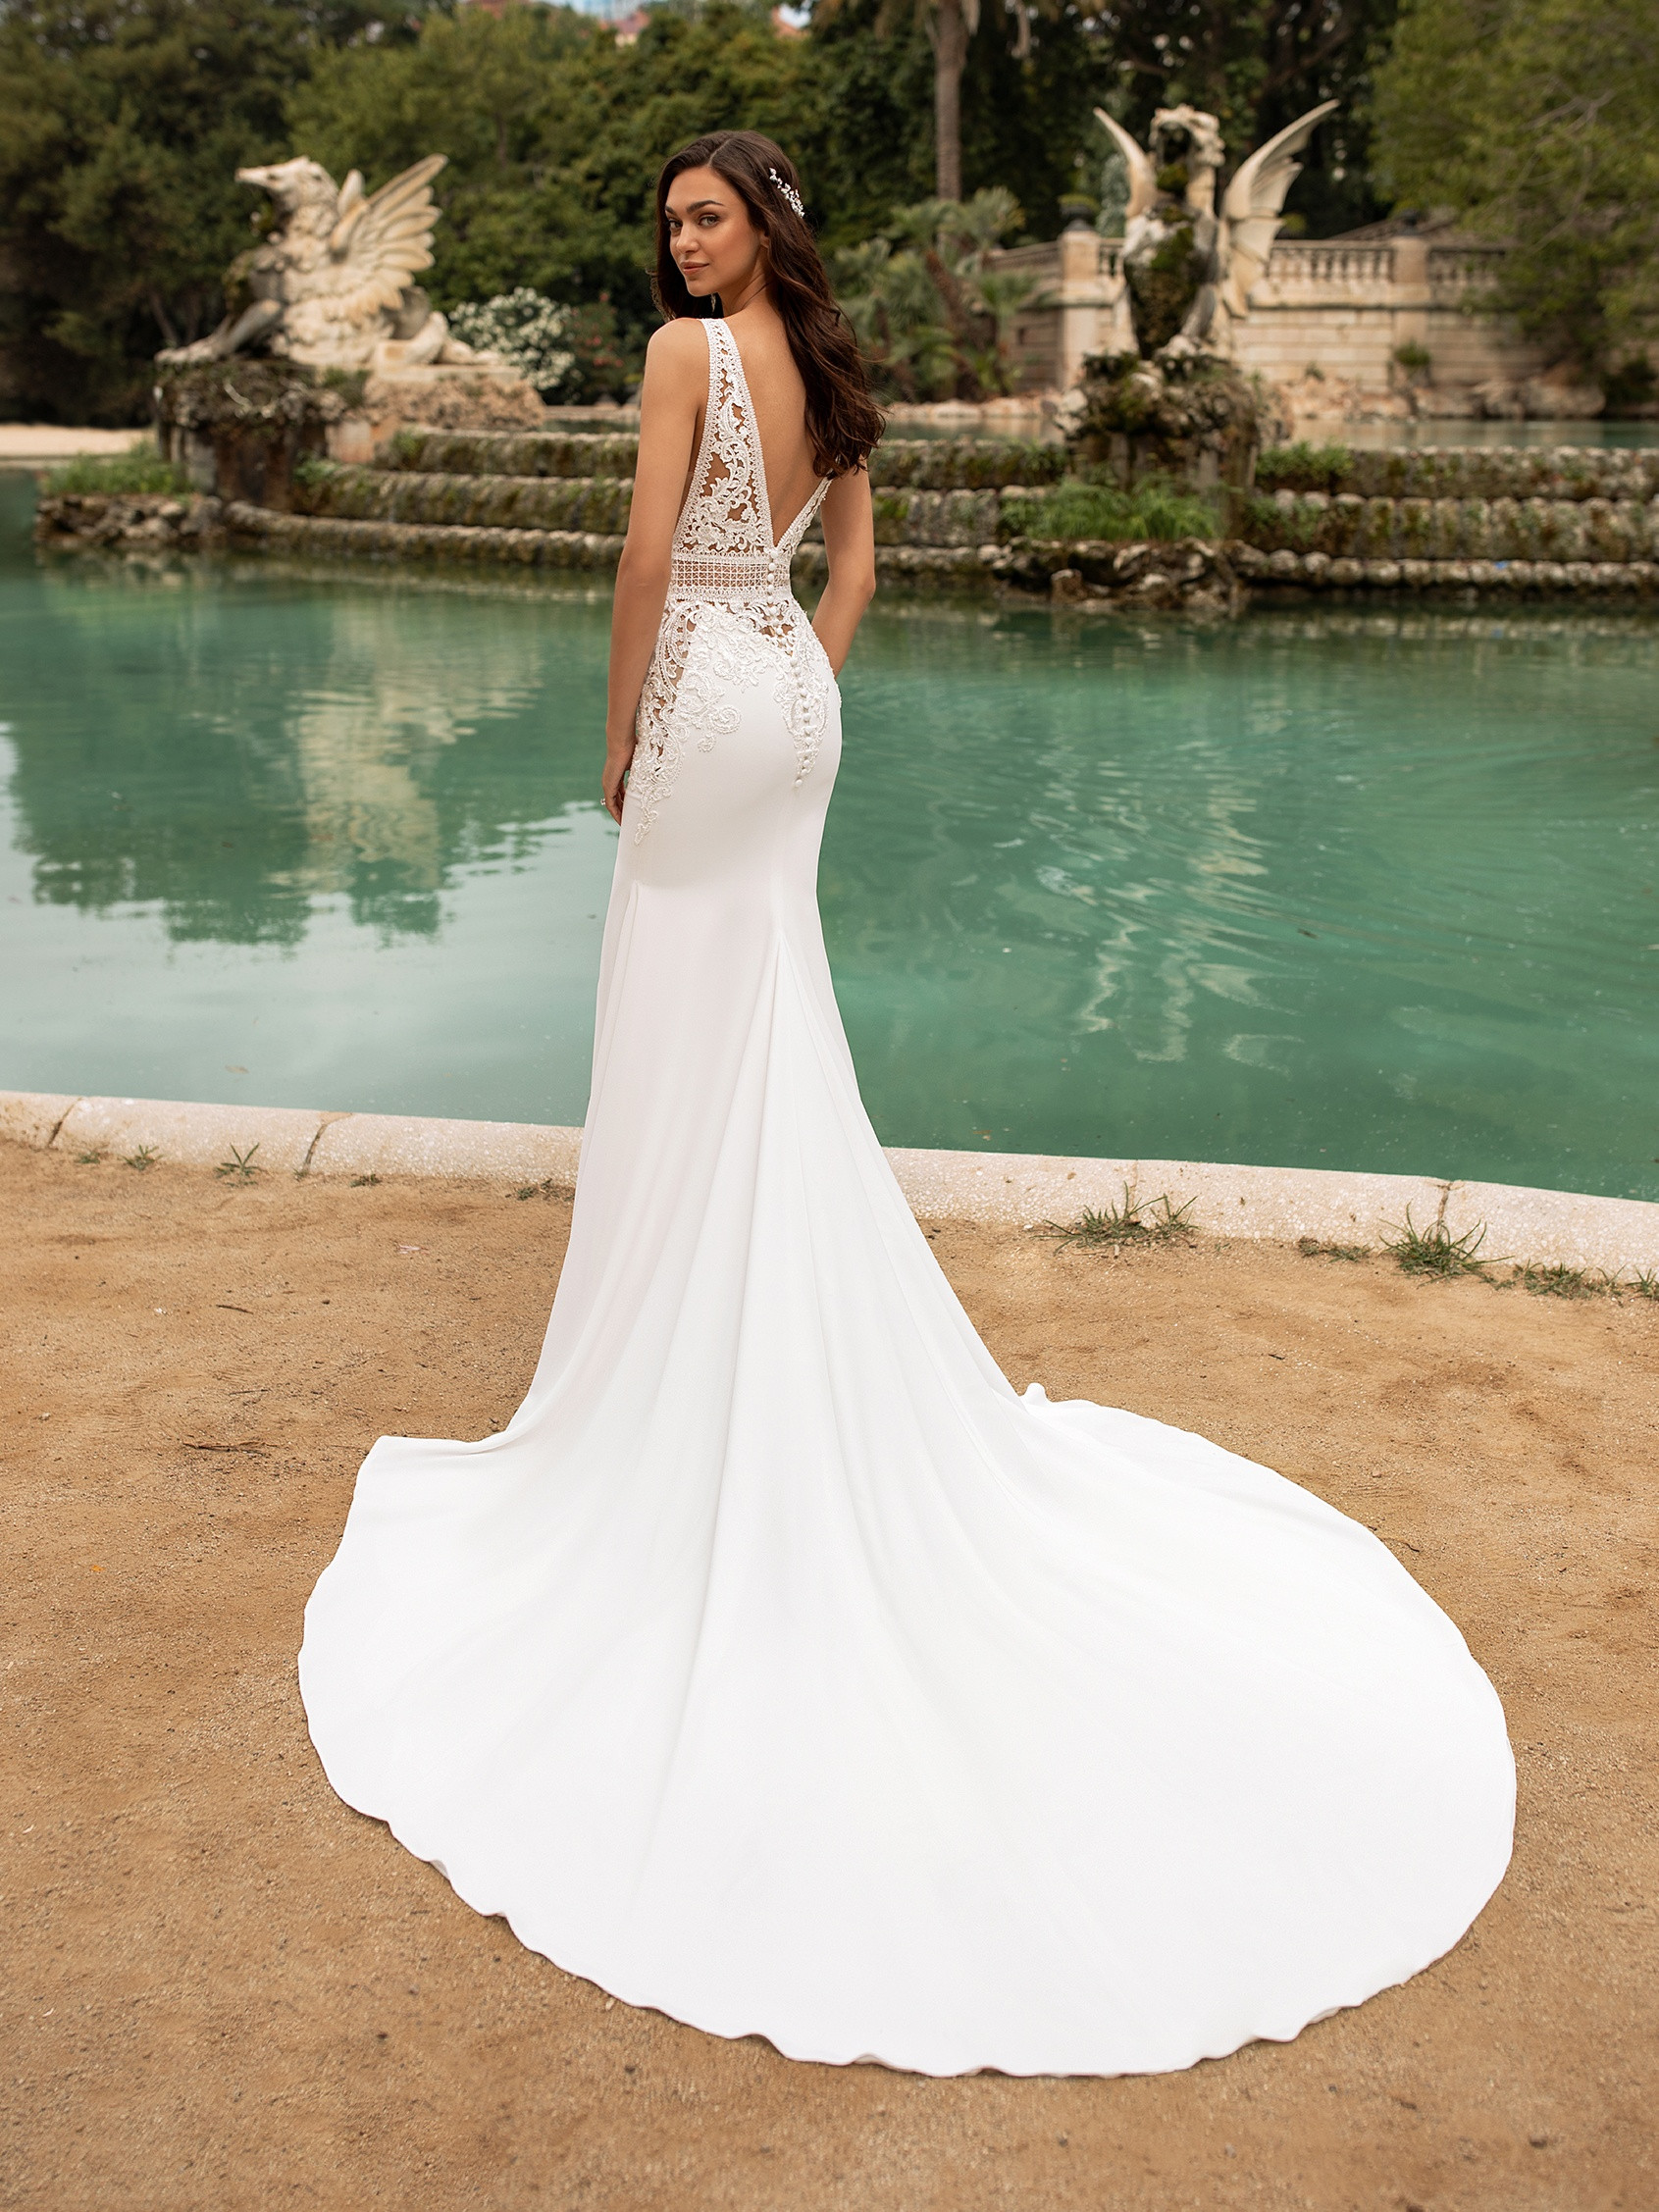 Wedding Dress. Bride using a fantasy of bridal fashion comes to this spectacular mermaid design capable of emphasizing feminine lines with crepe